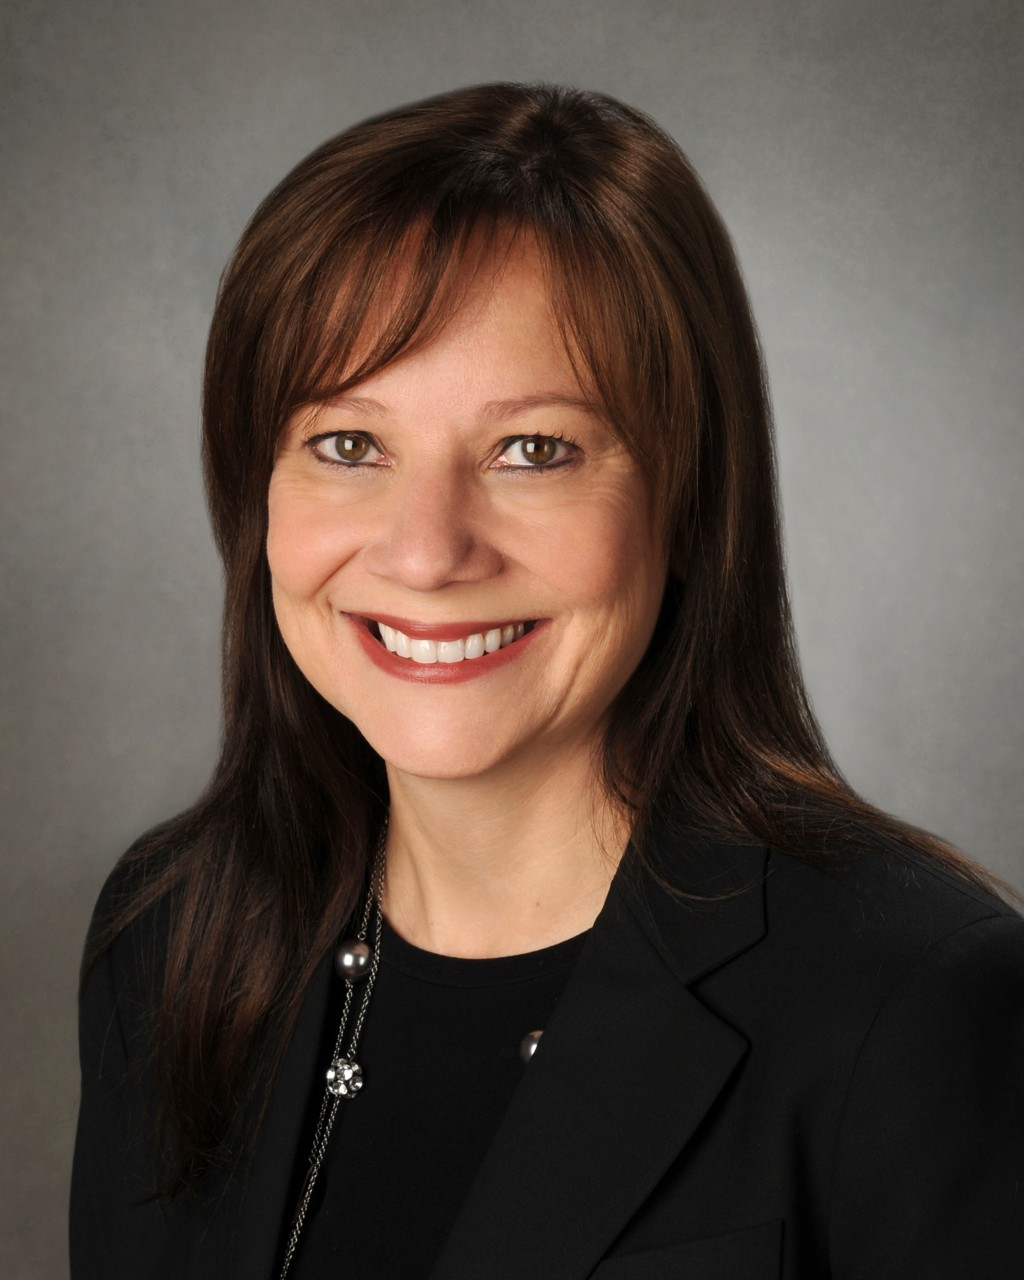 Gm Ceo Mary Barra 7th Most Powerful Woman In The World